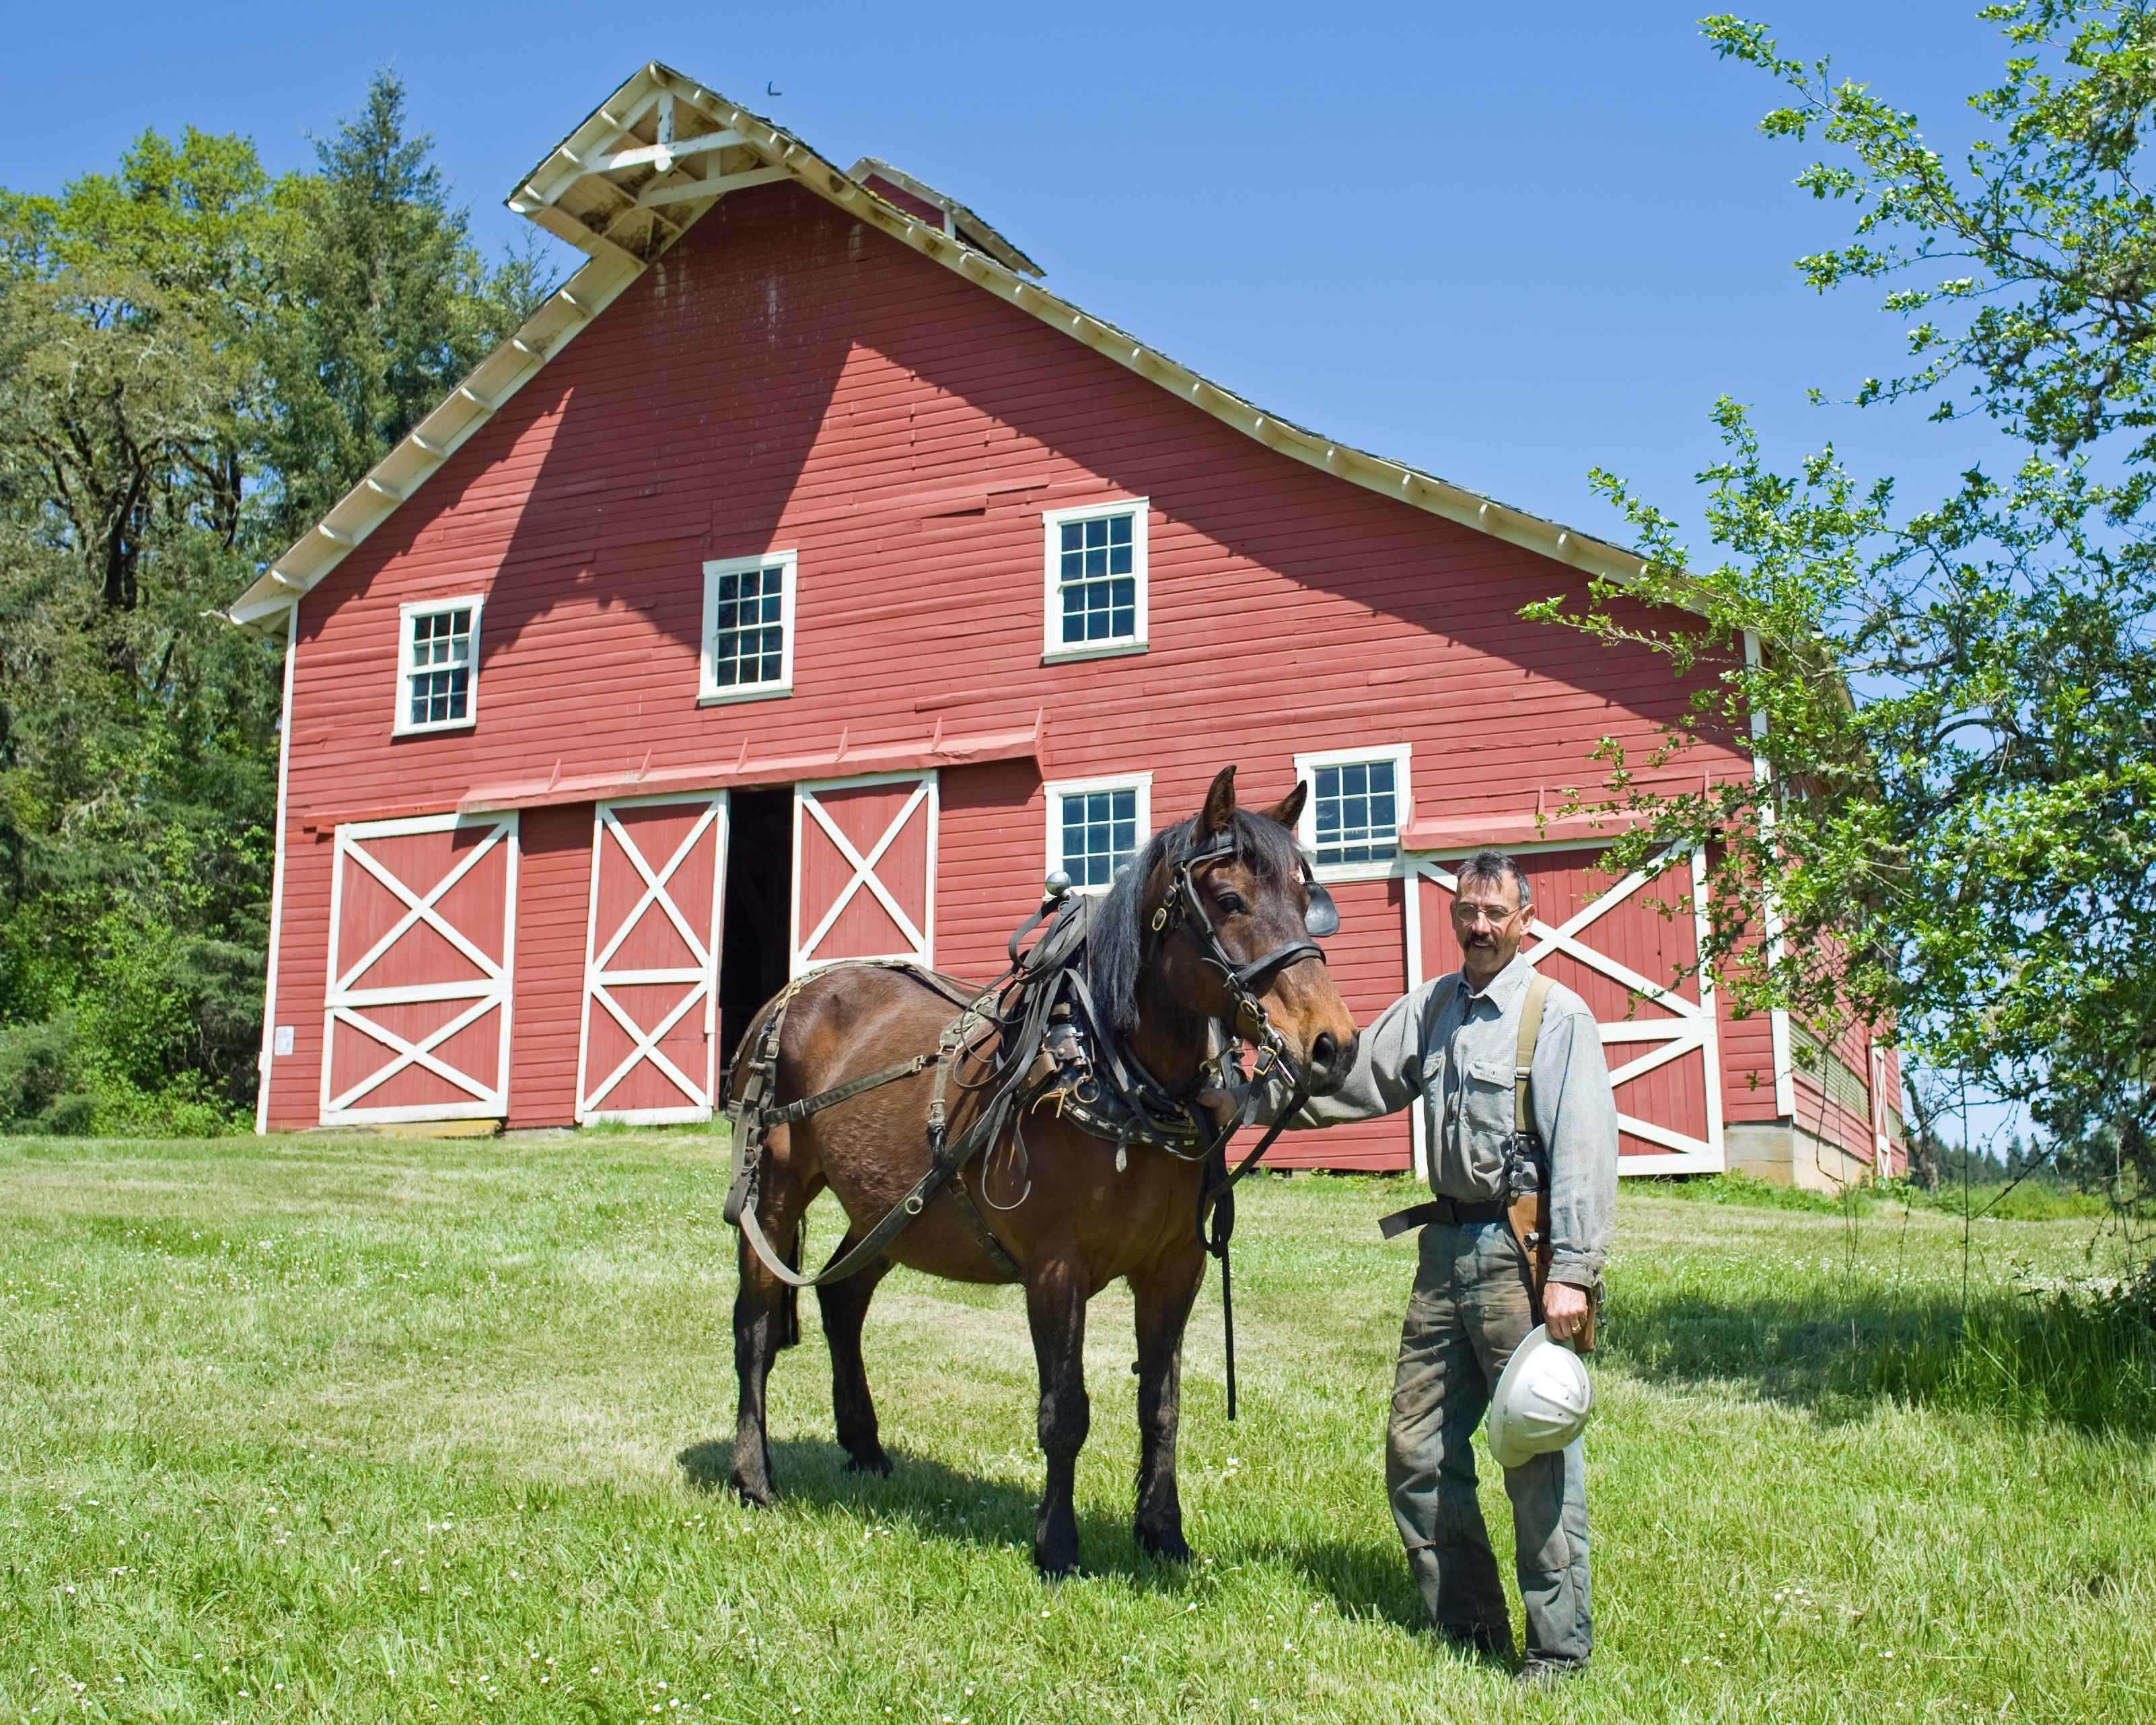 Description Cowboy With Horse In Front Of Barn